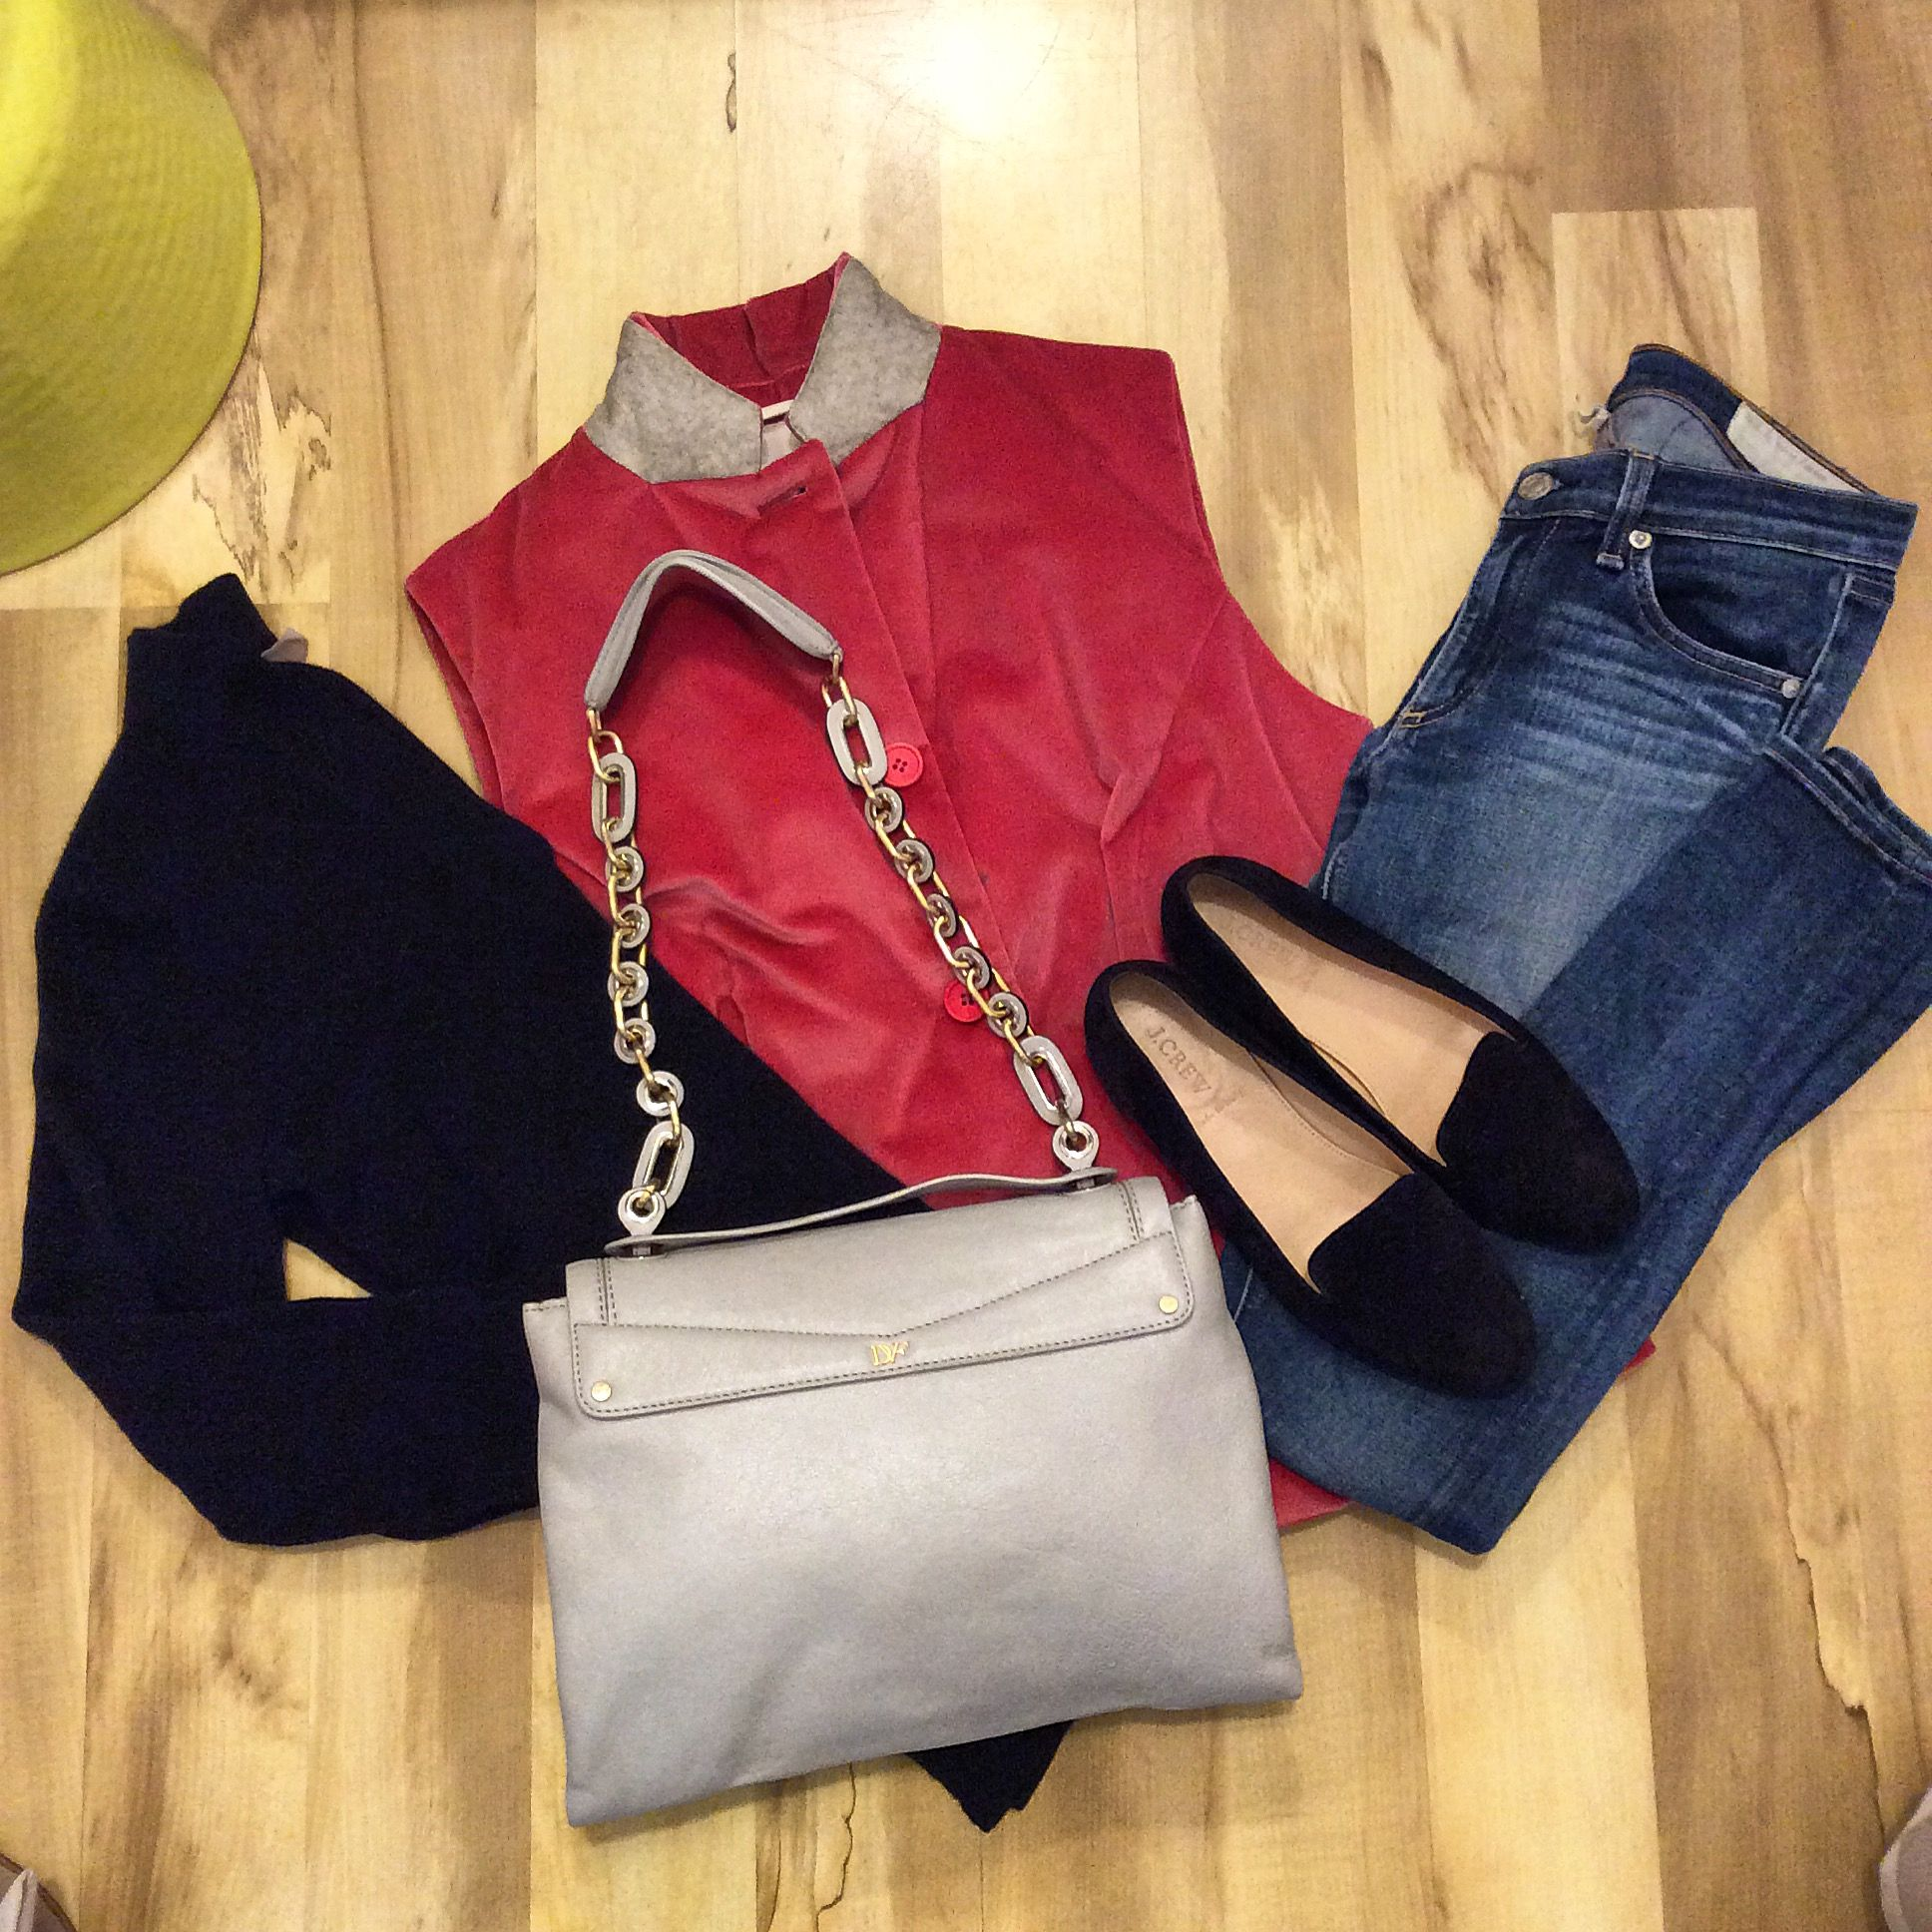 Stylish comfort is the theme of this outfit of the day: Ellie Kai cashmere sweater S $68, Brunello Cucinelli vest 46 $168, Rag & Bone skinny jeans 27 $48, DVF purse $98, and J. Crew velvet flats 7.5 $28.